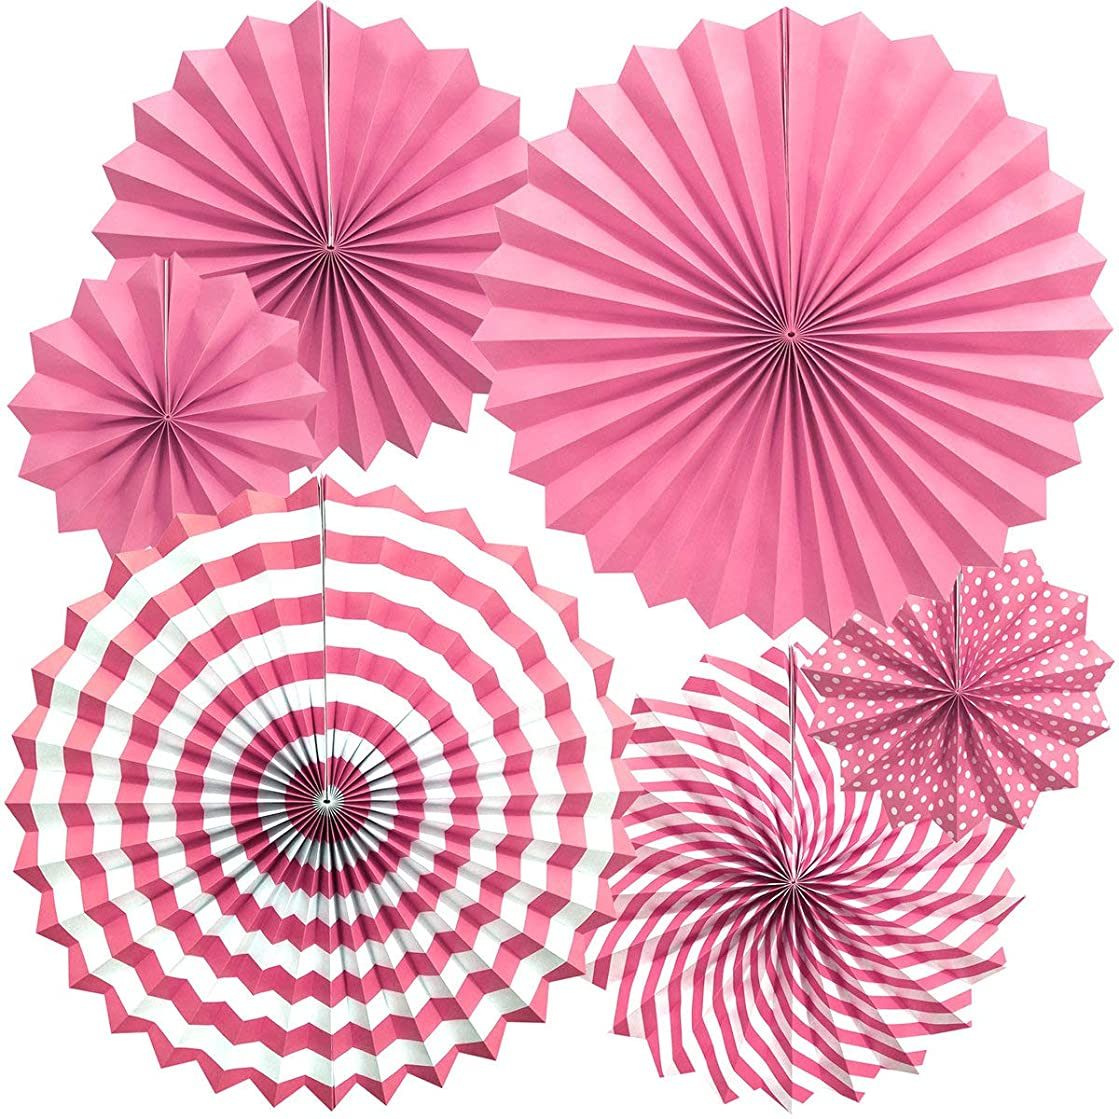 Zolee Hanging Paper Fans Decorations Kit for Wall - Set of 6 Circle Rosettes Tissue Paper Fans Bulk for Party Favors, Wedding, Birthday, Festival, Christmas, Events, Home Decor (Pink)